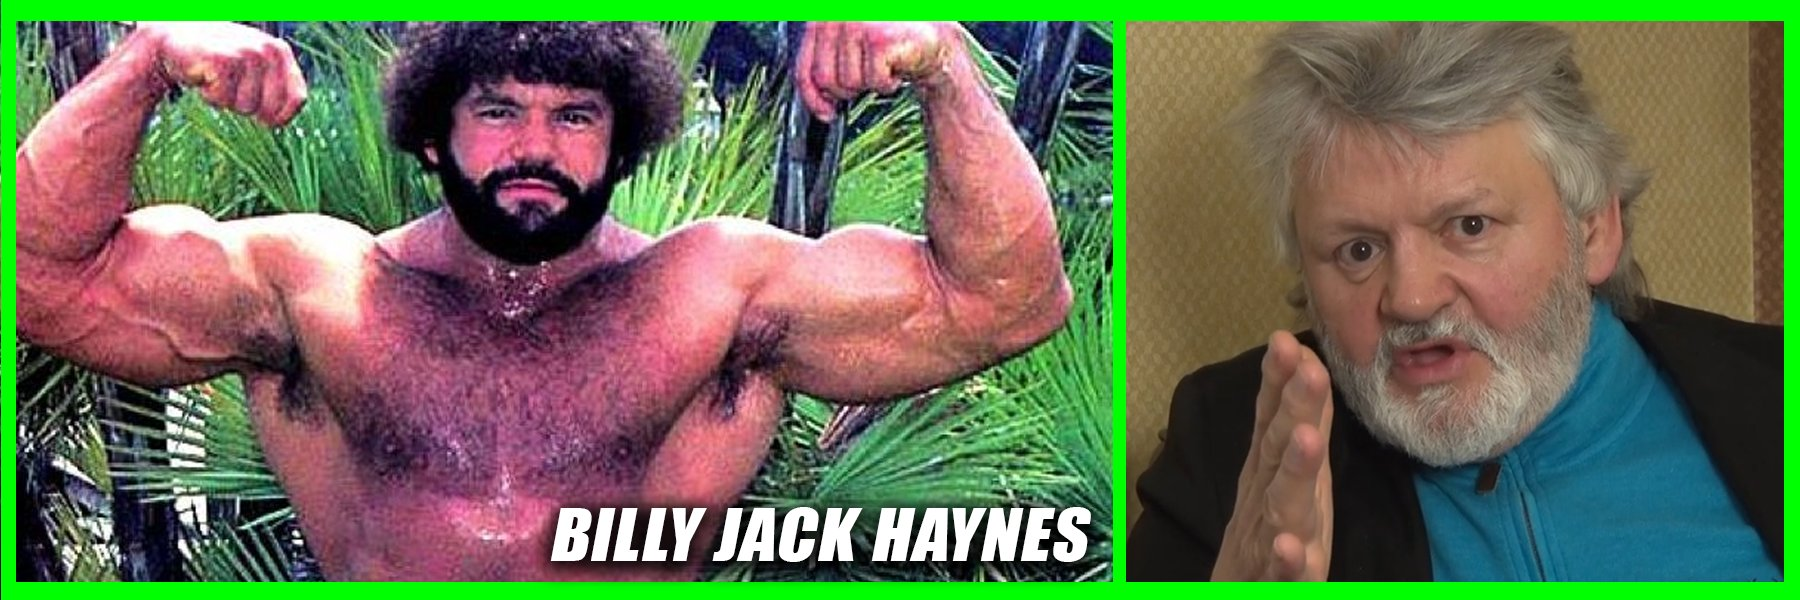 BRAND NEW | Billy Jack Haynes Shoot Interview (May 2019) Stream Now!